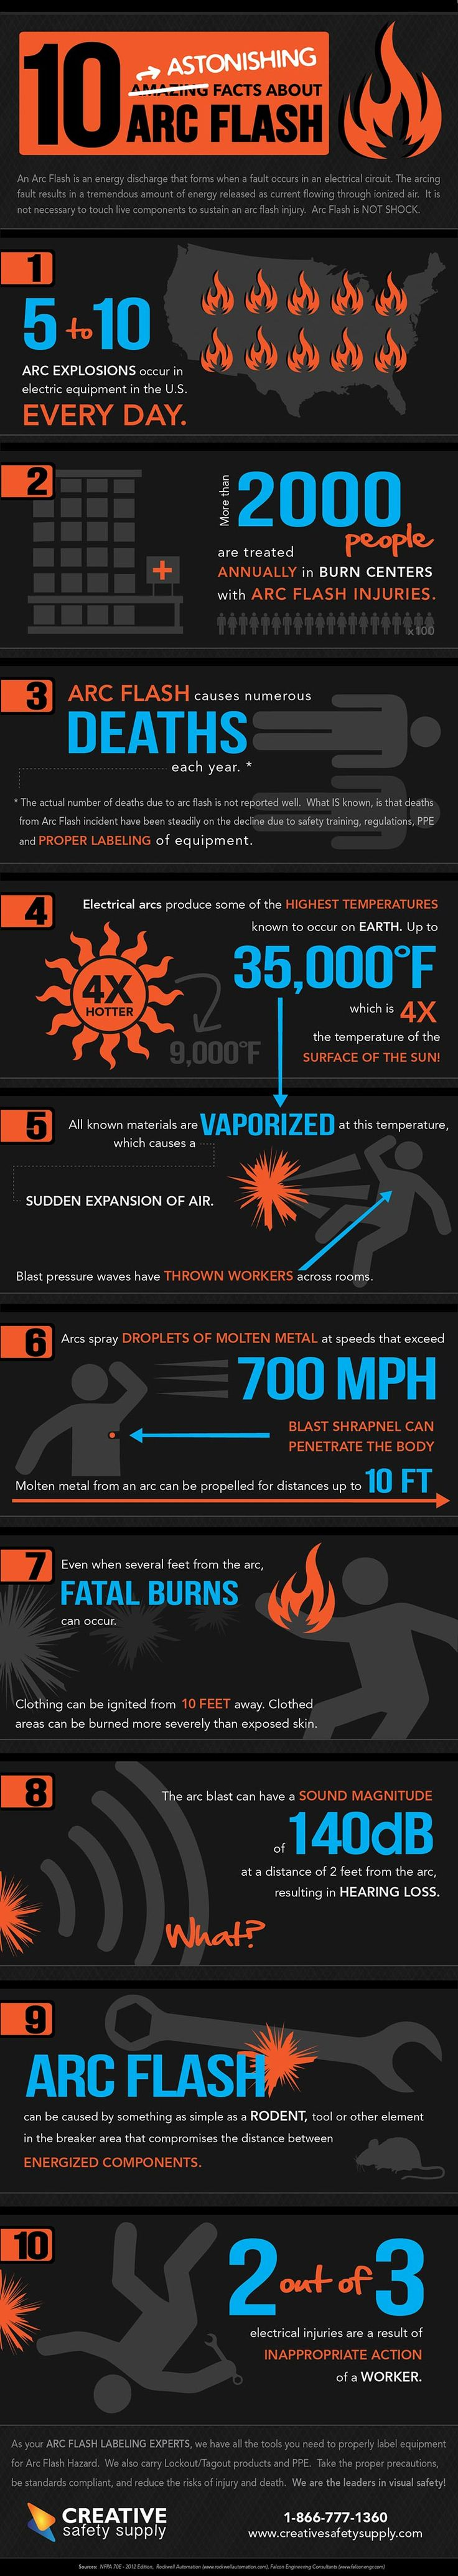 10 Astonishing Facts about Arc Flash